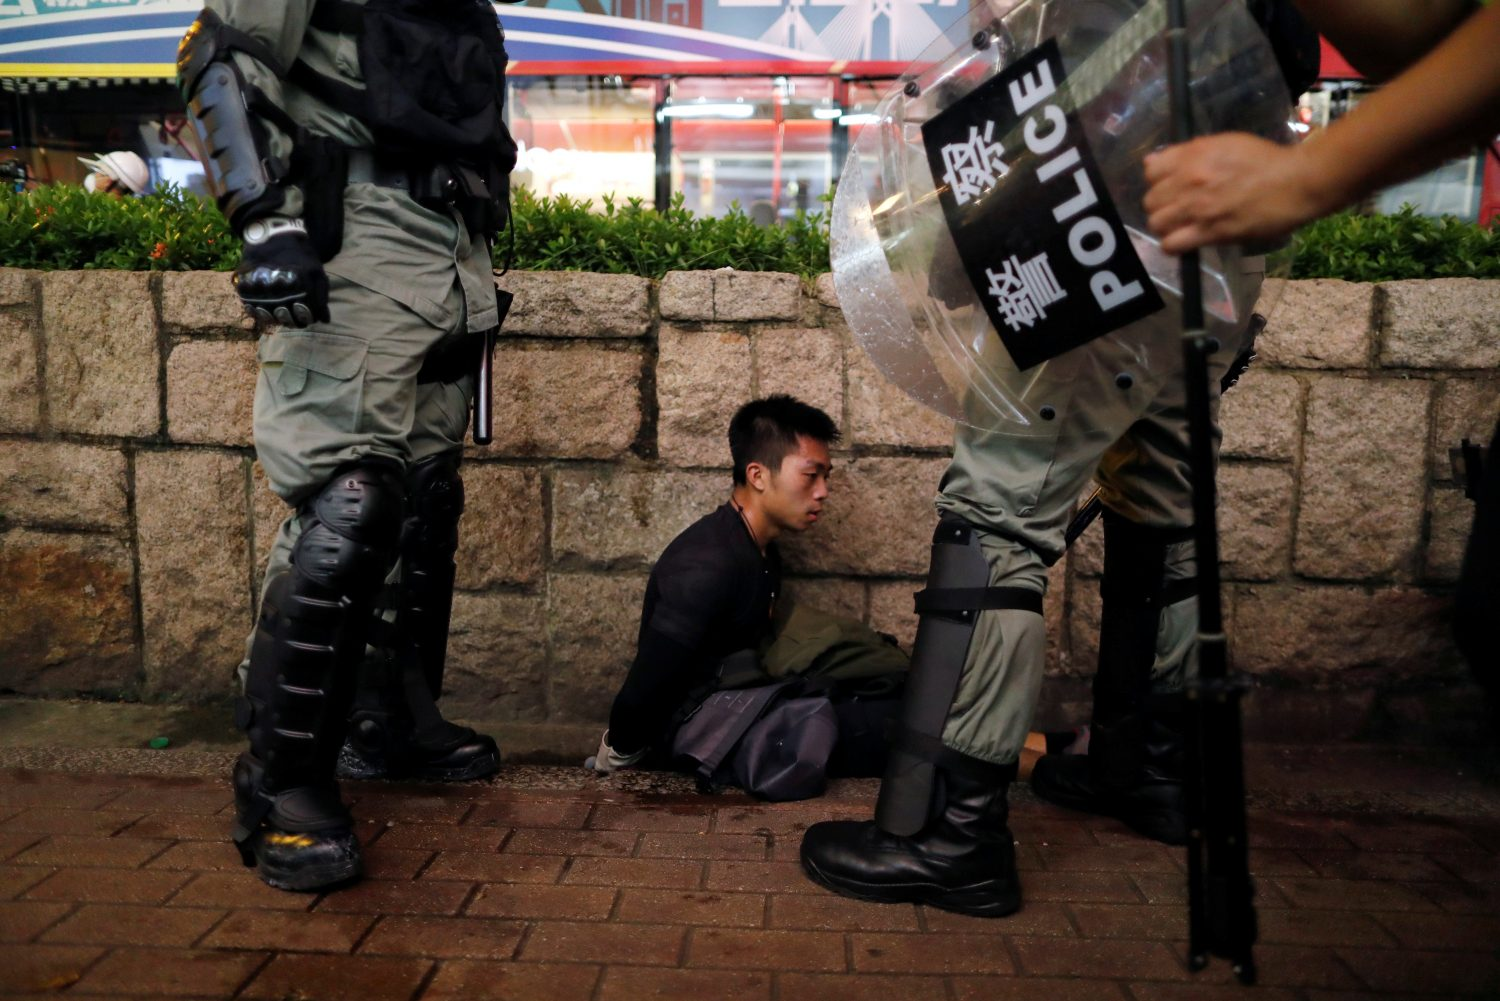 Riot police officers detain an anti-extradition bill protester during a demonstration in Tsim Sha Tsui neighbourhood in Hong Kong, China, August 11, 2019. REUTERS/Issei Kato